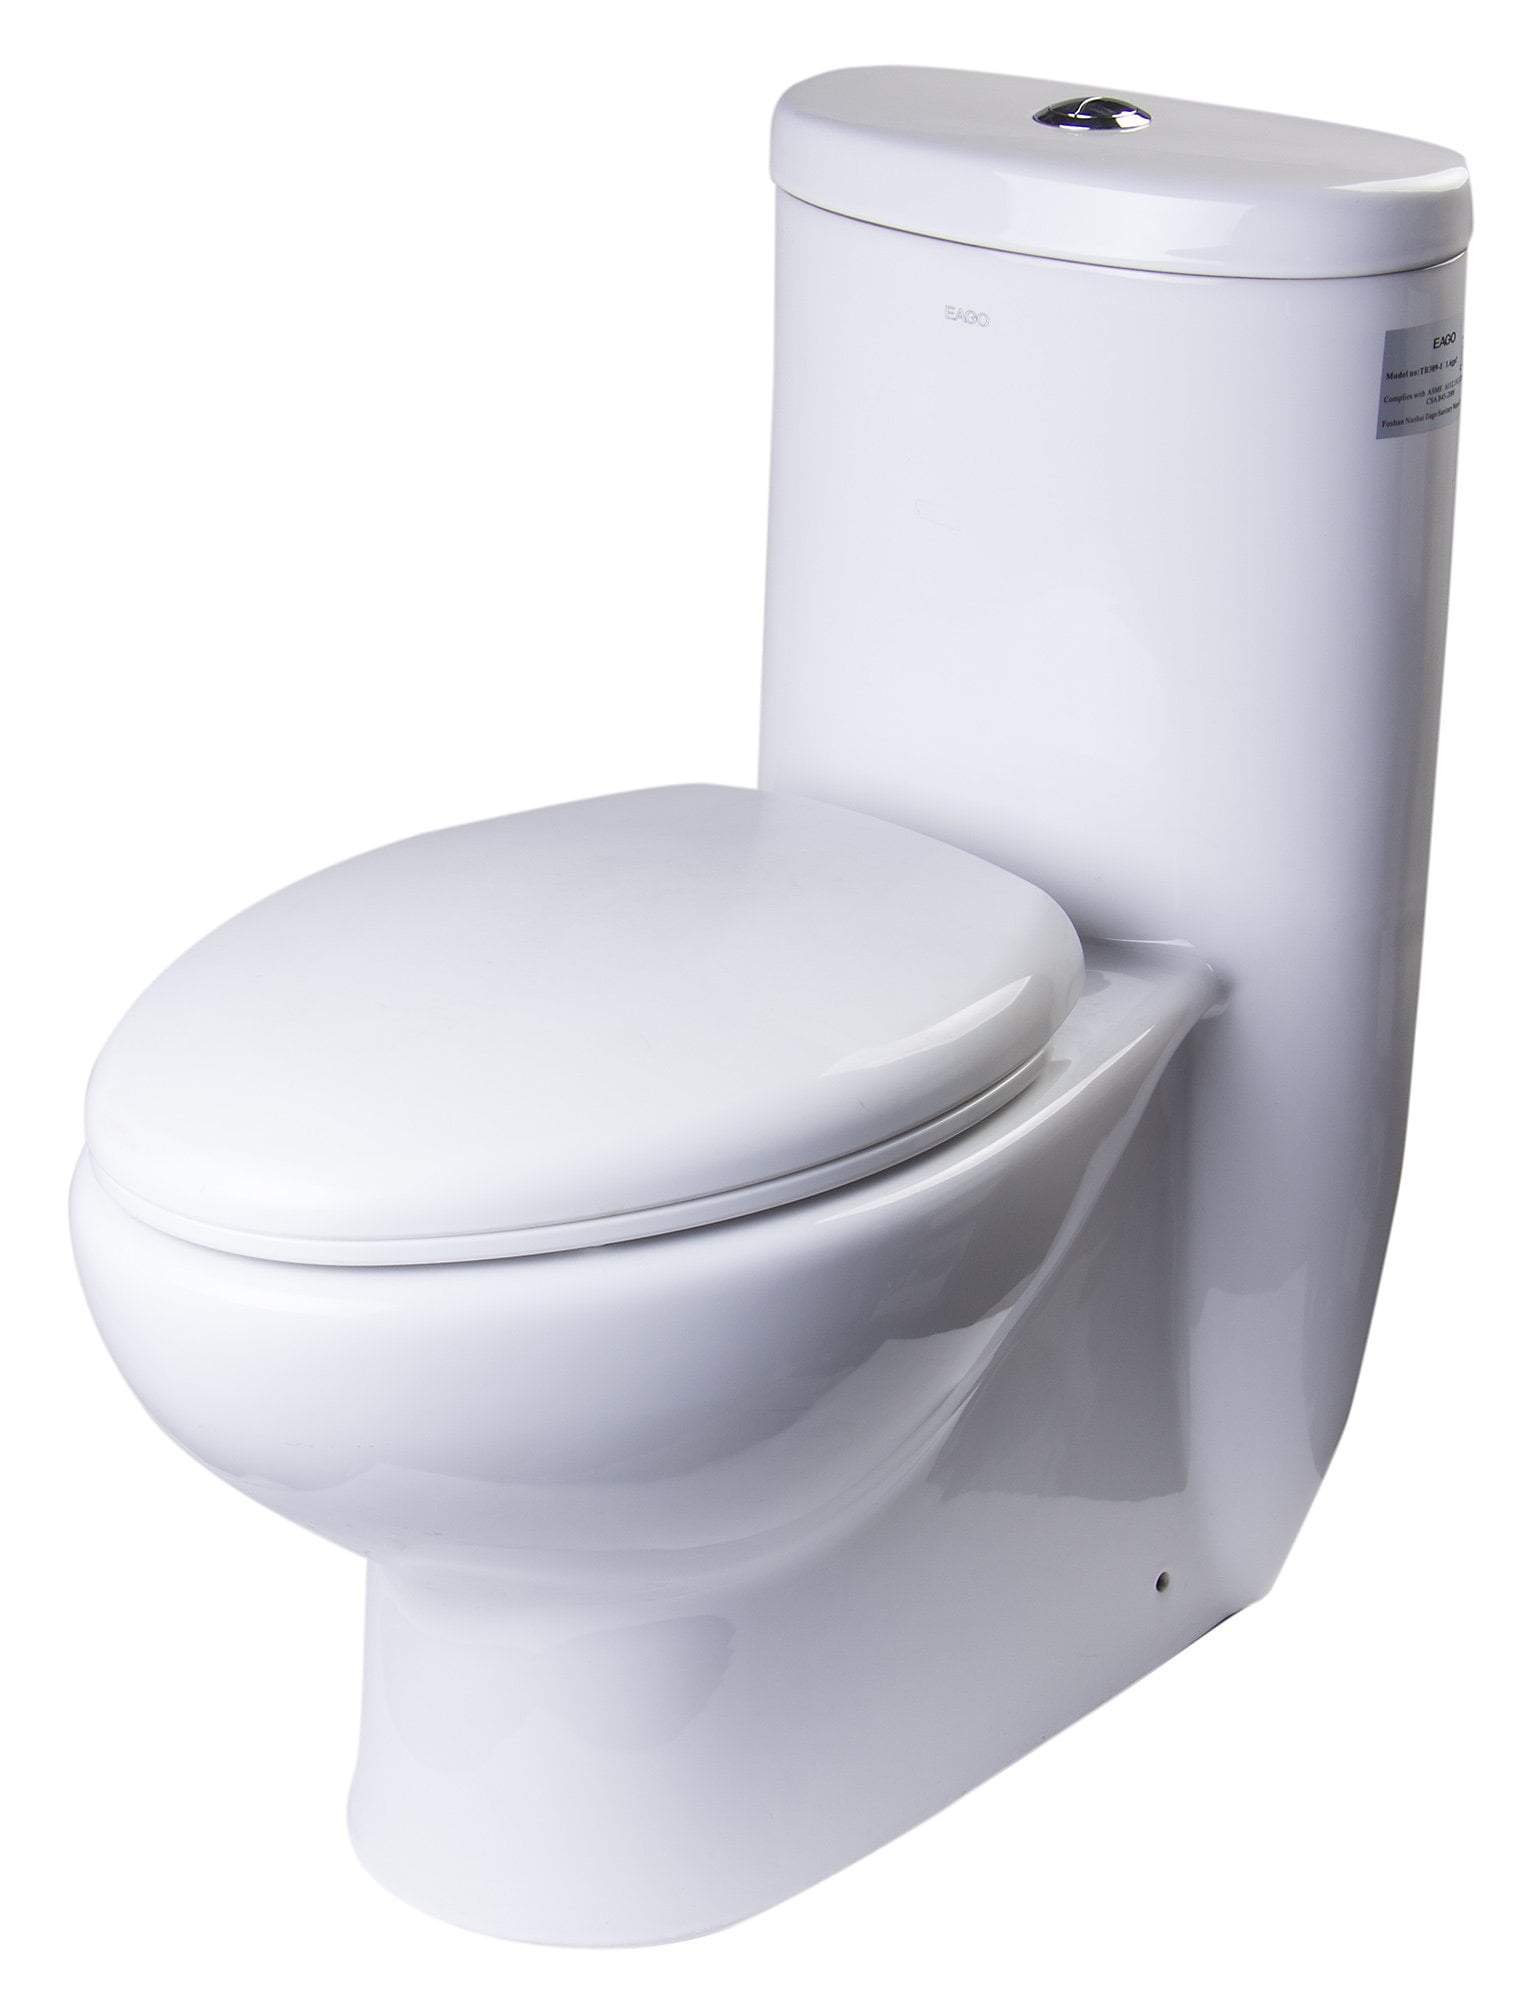 EAGO TB309 TALL DUAL FLUSH ONE PIECE ECO-FRIENDLY HIGH EFFICIENCY LOW FLUSH CERAMIC TOILET